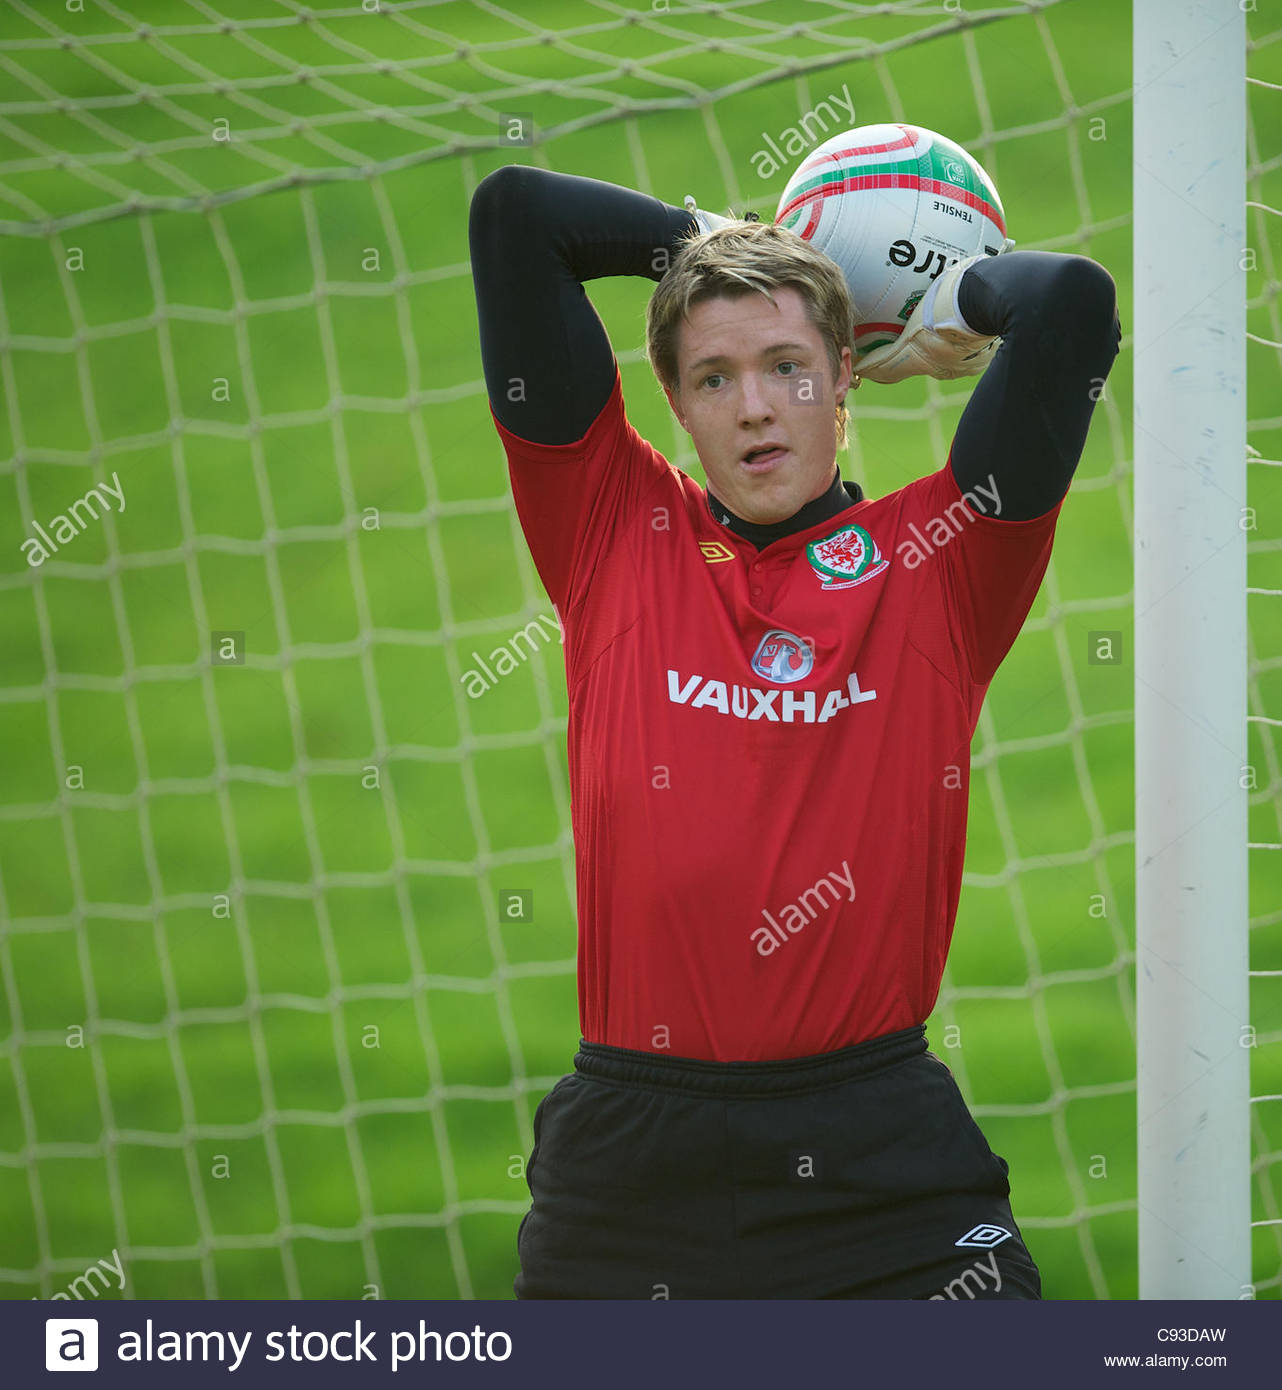 CARDIFF, WALES - Thursday, November 10, 2011: Wales' goalkeeper Wayne Hennessey during a training session at the Stock Photo